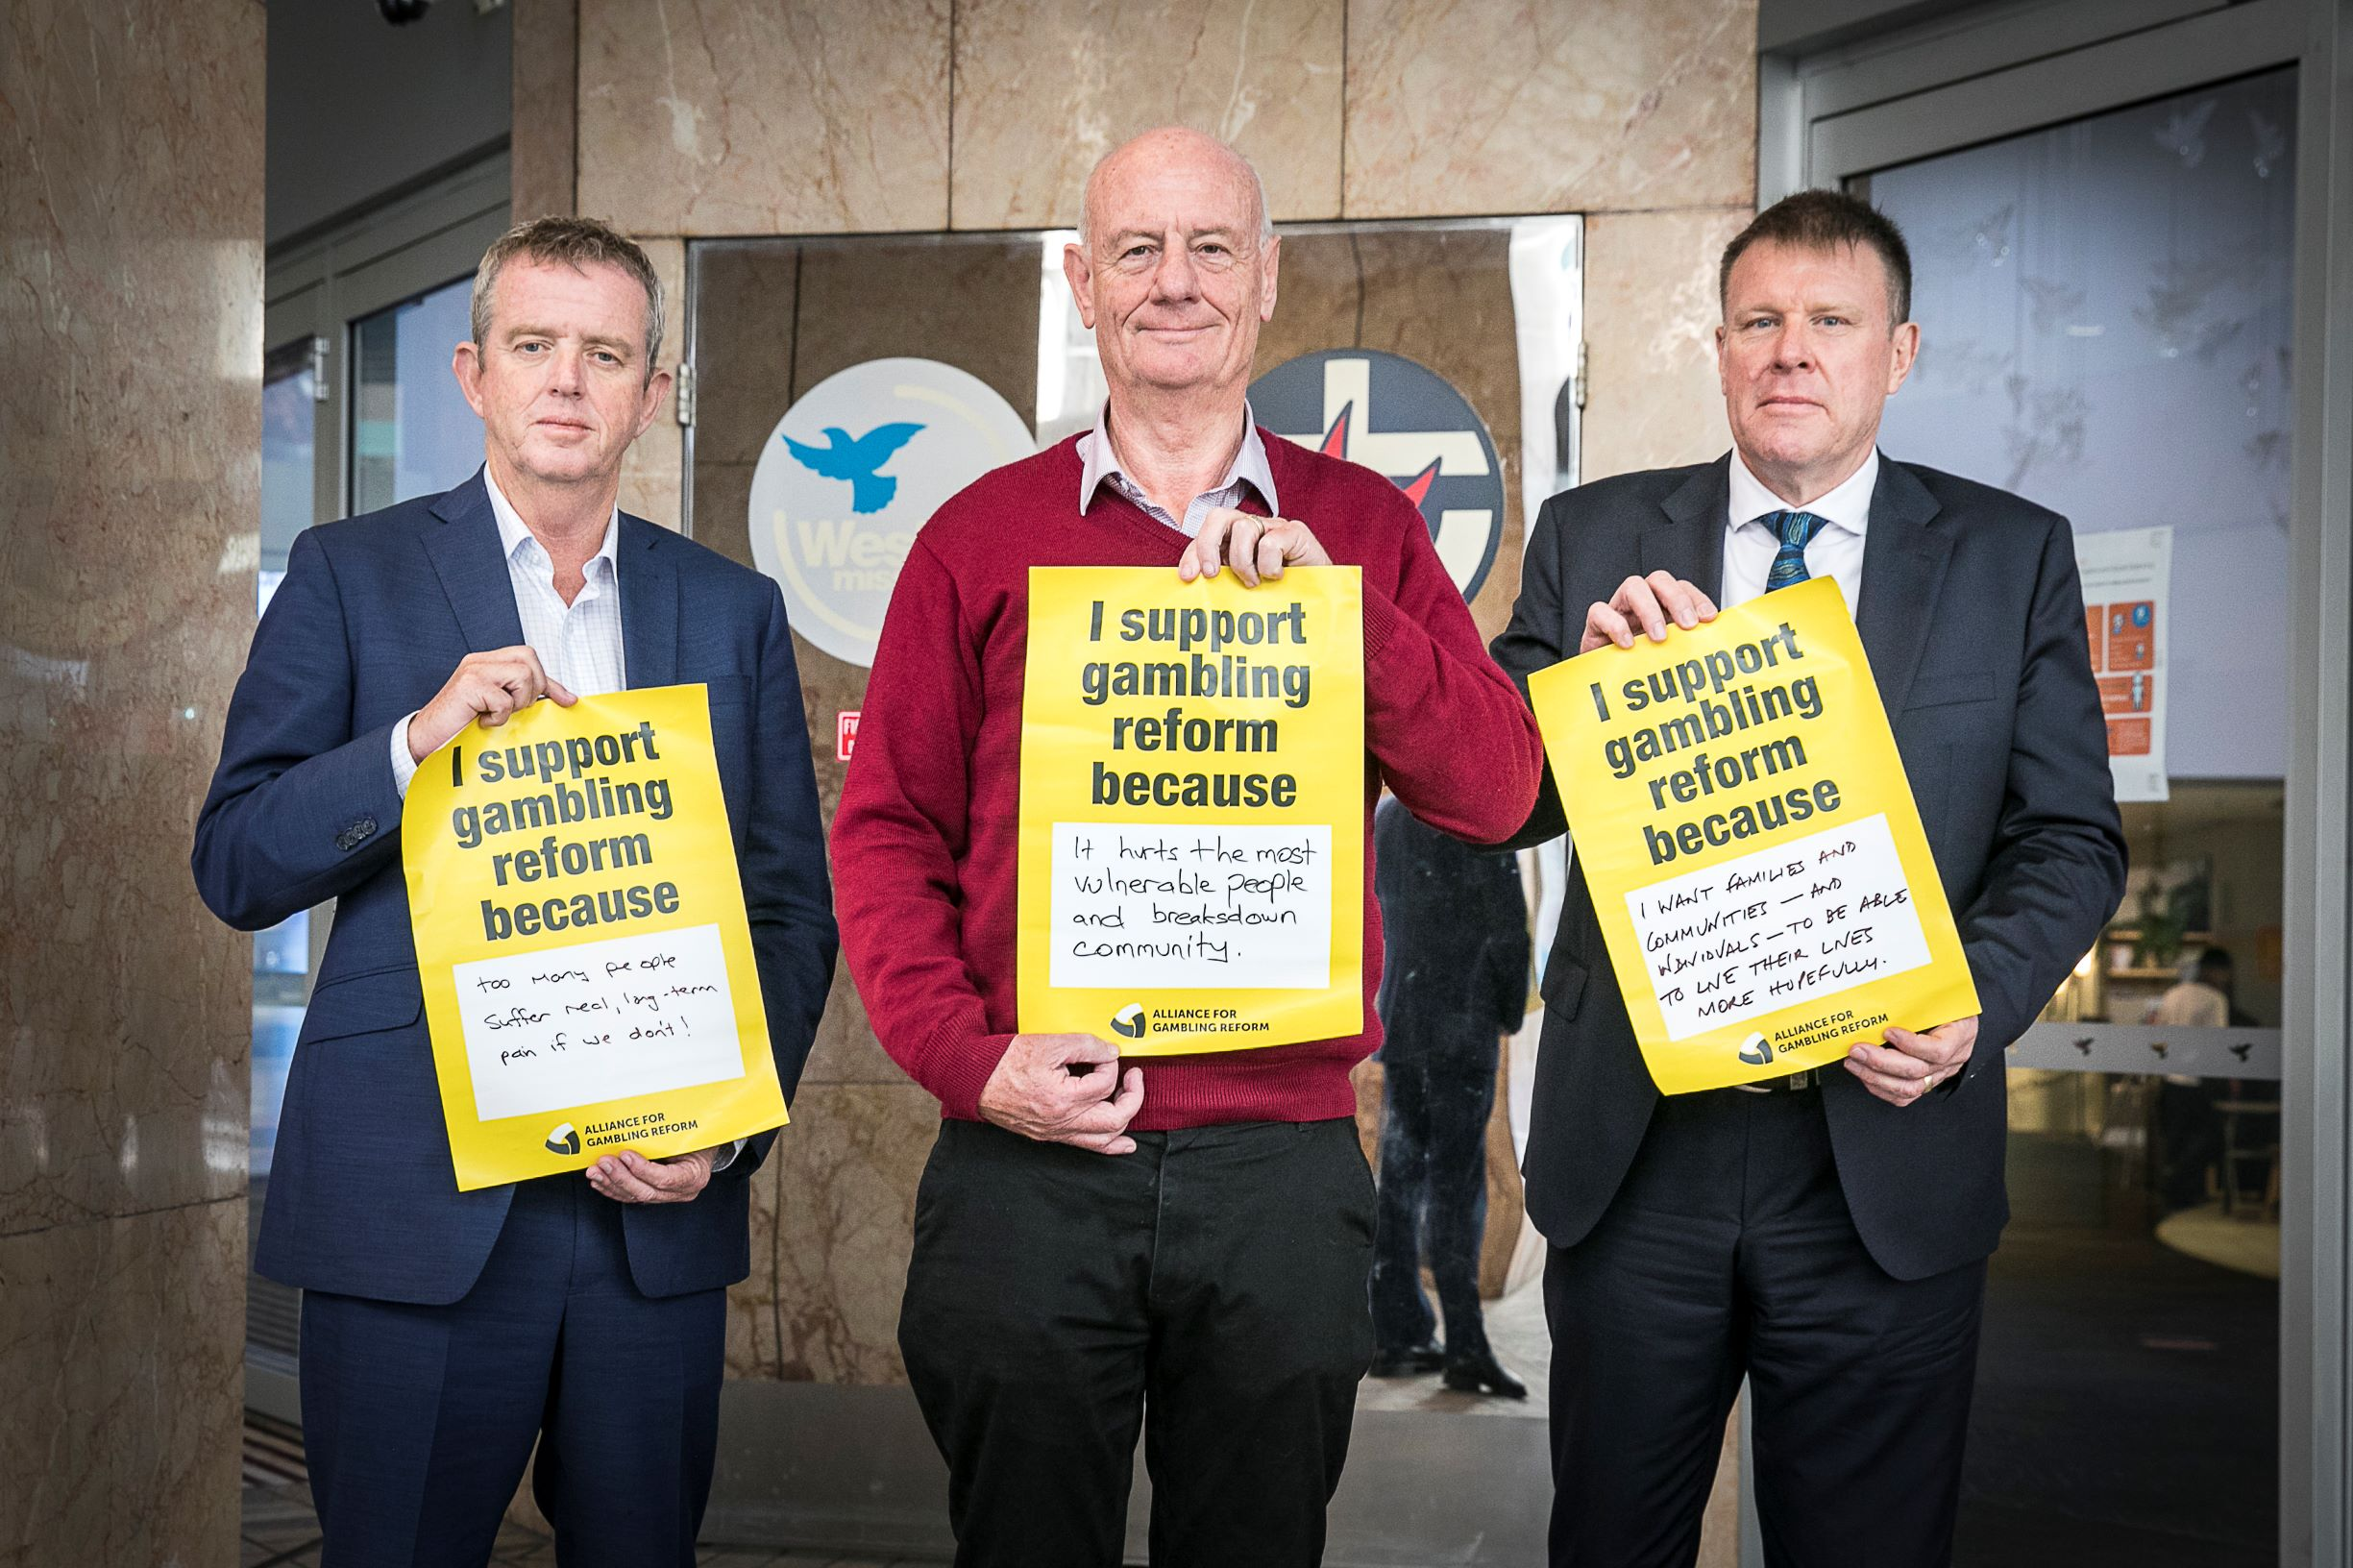 Three men standing holding posters about gambling reform